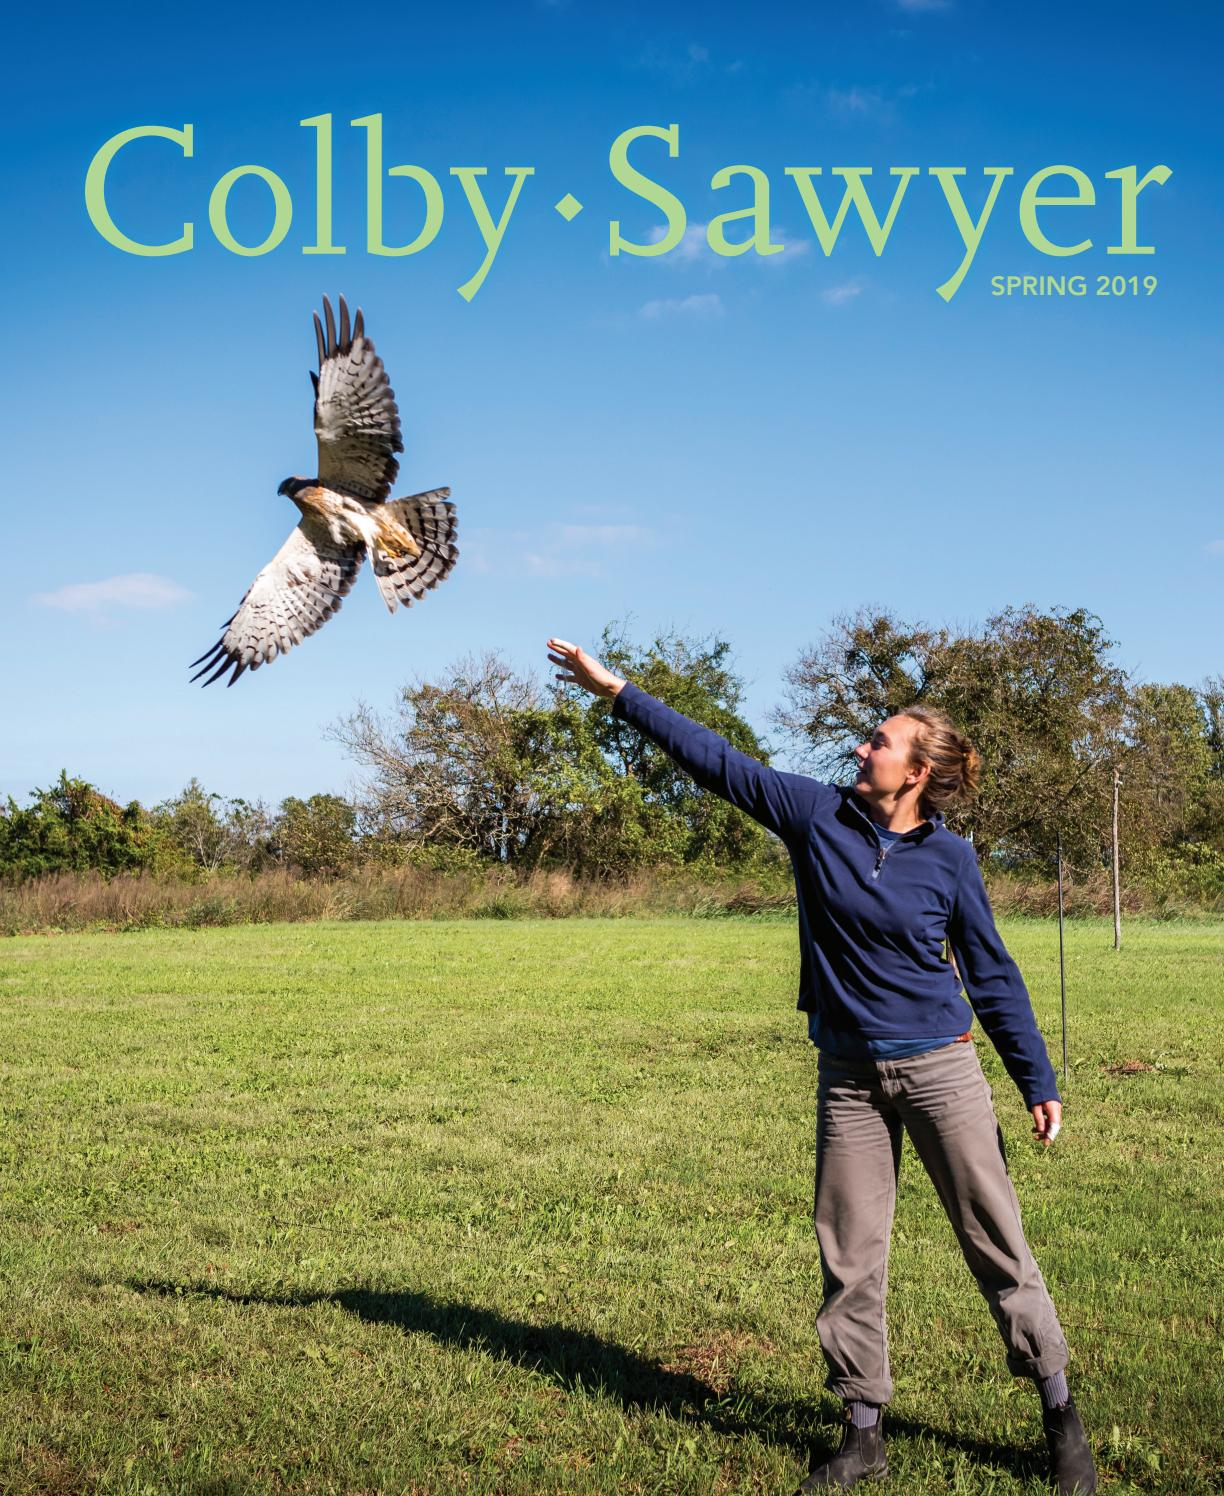 Colby-Sawyer Magazine Spring 2019 by Colby-Sawyer College